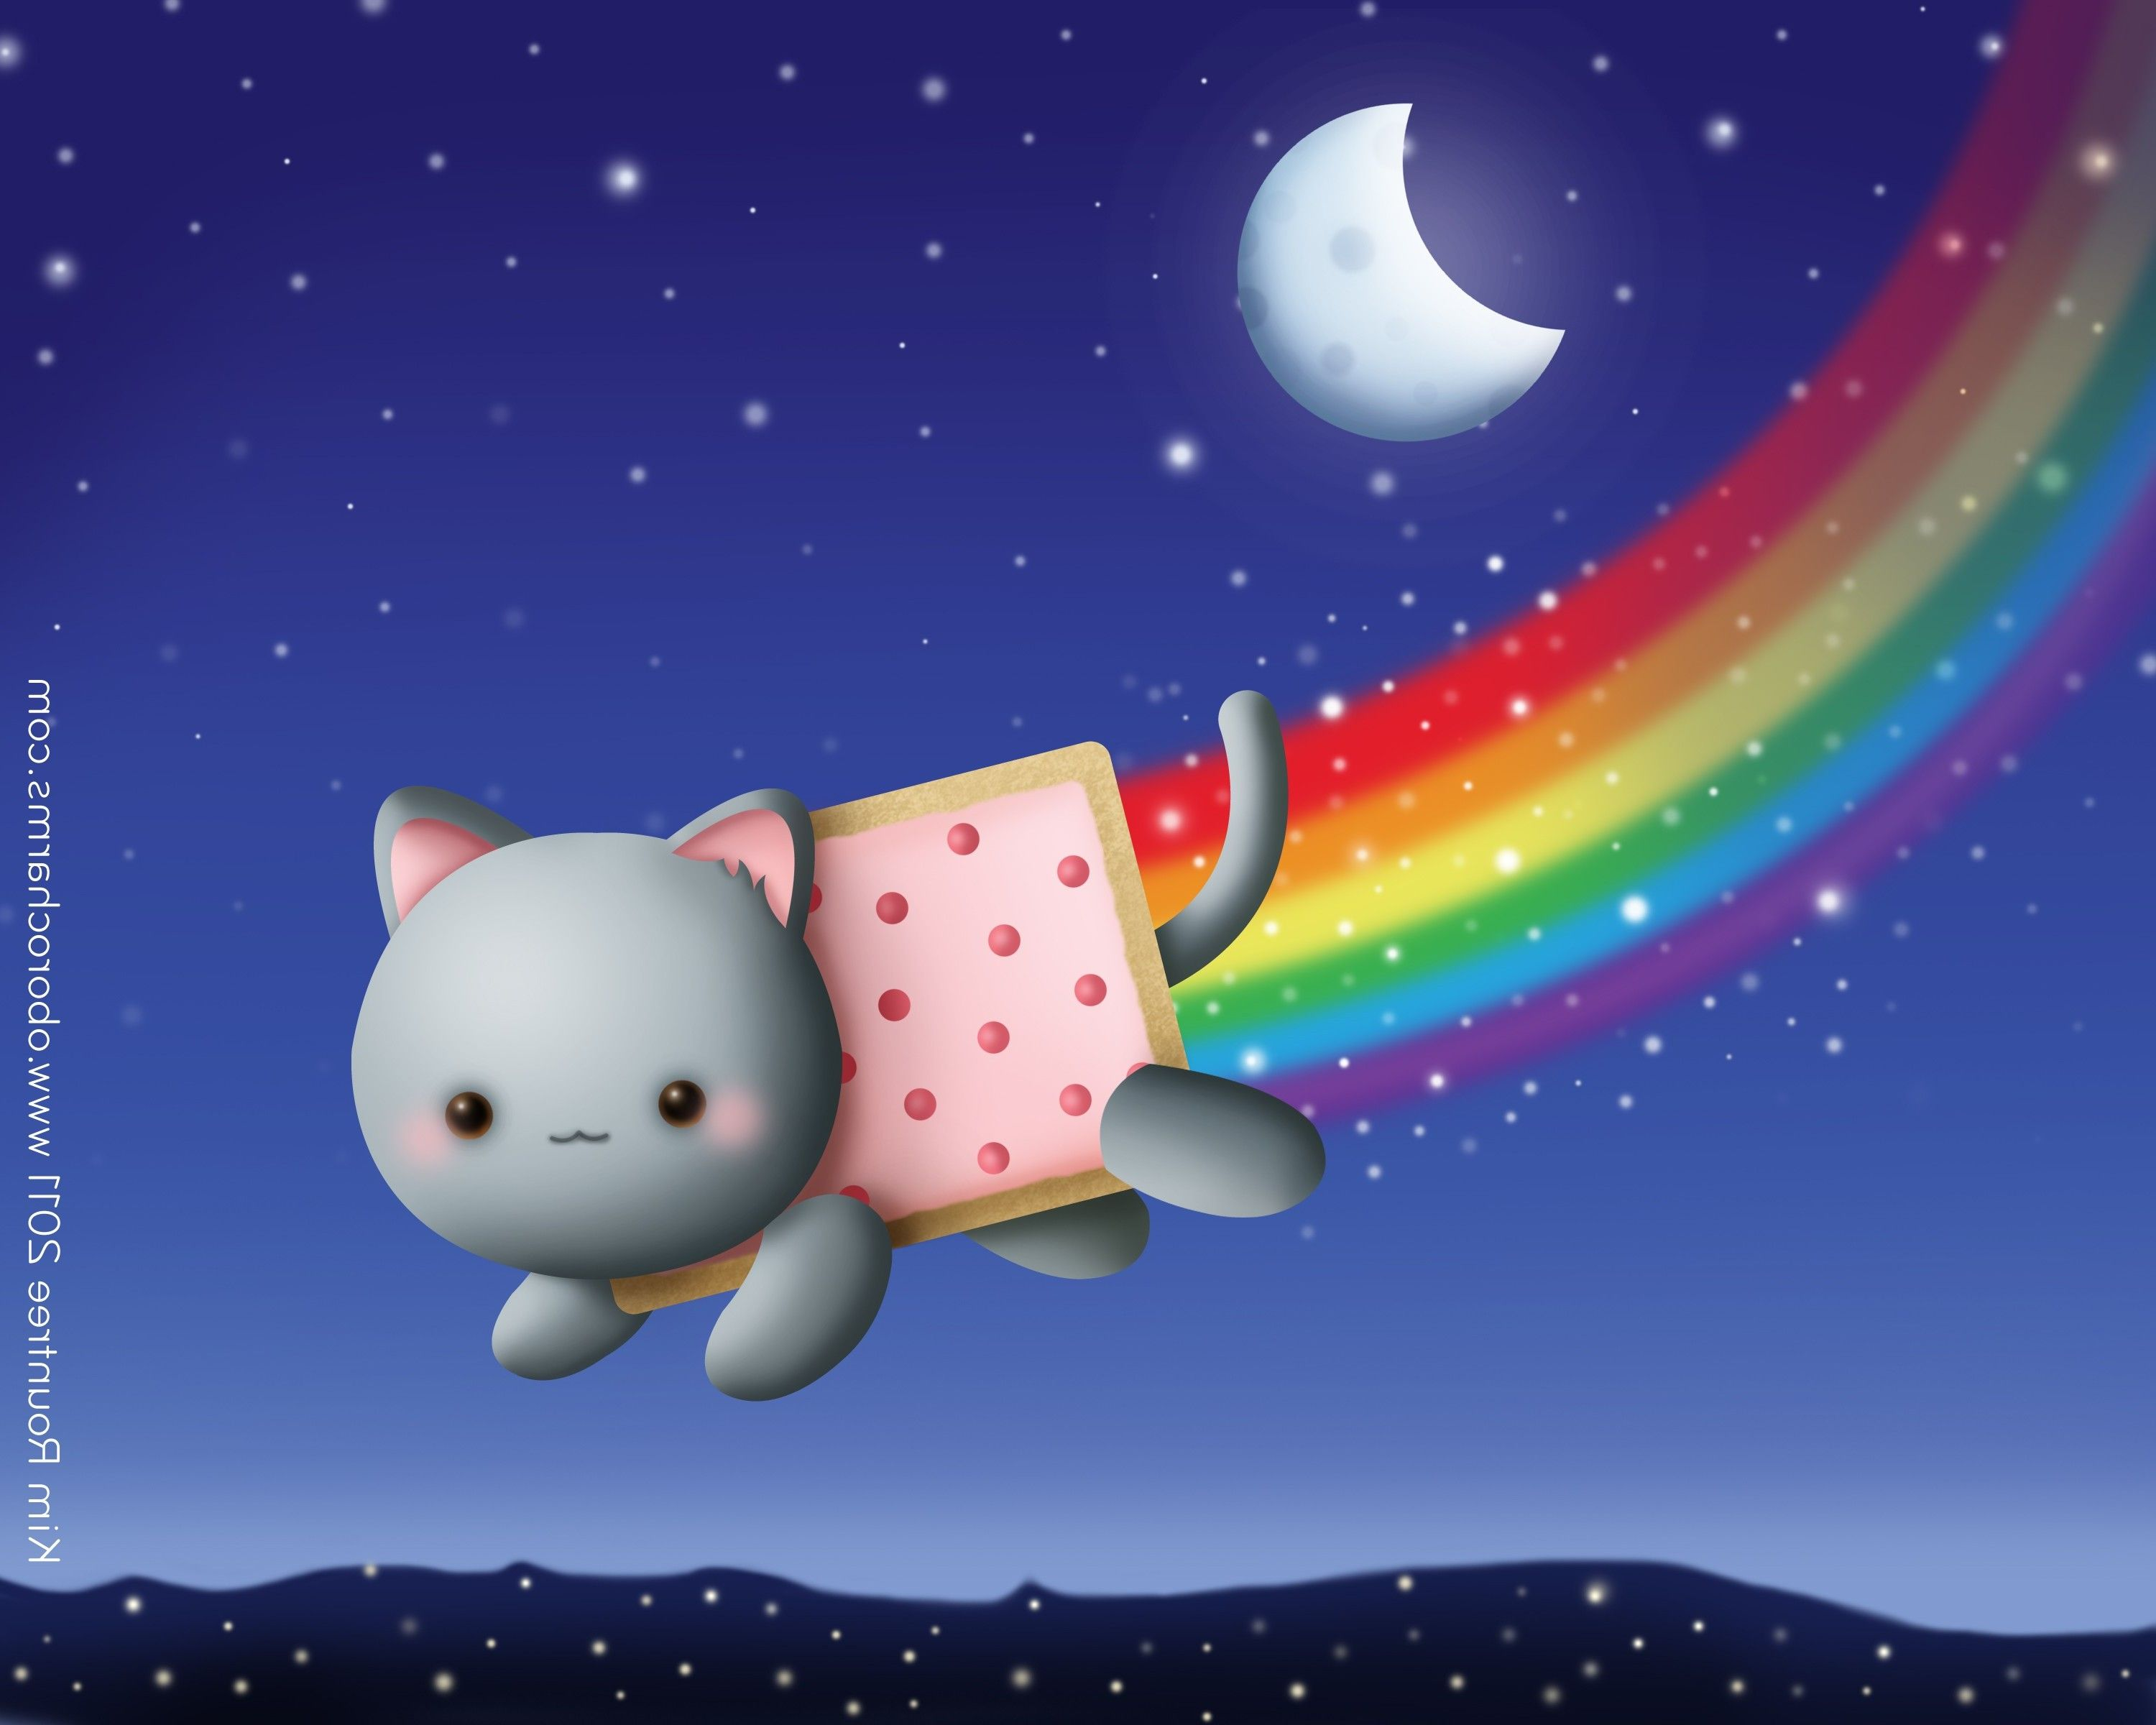 Nyan Cat Video Wallpaper and Video Ringtone for iPhone